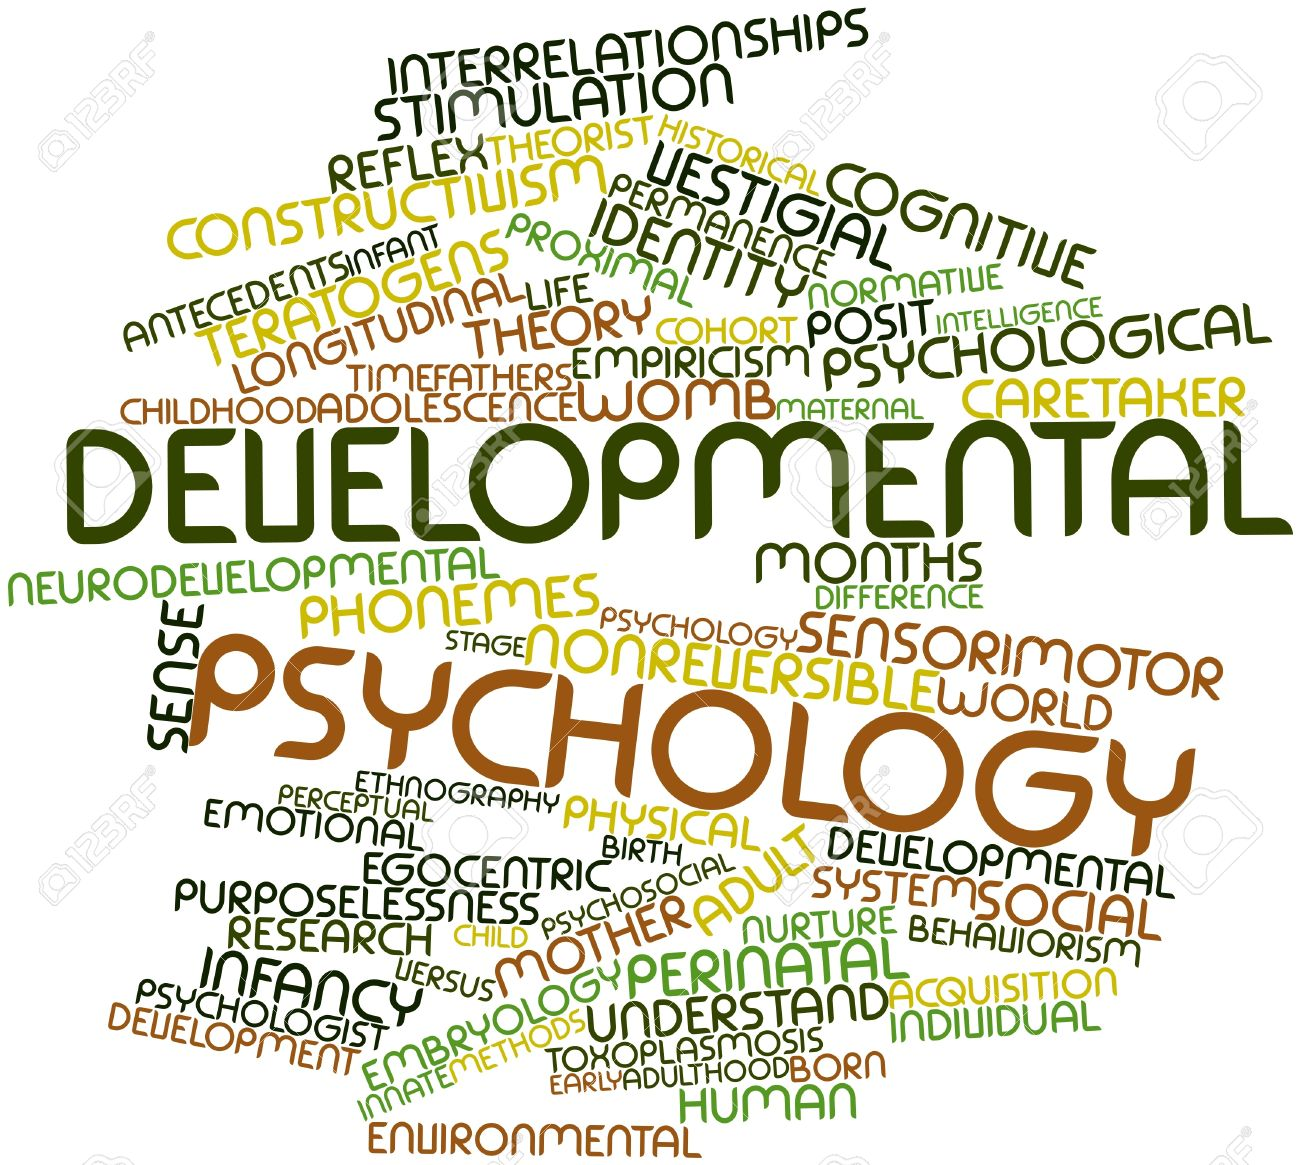 Developmental Psychology Examples